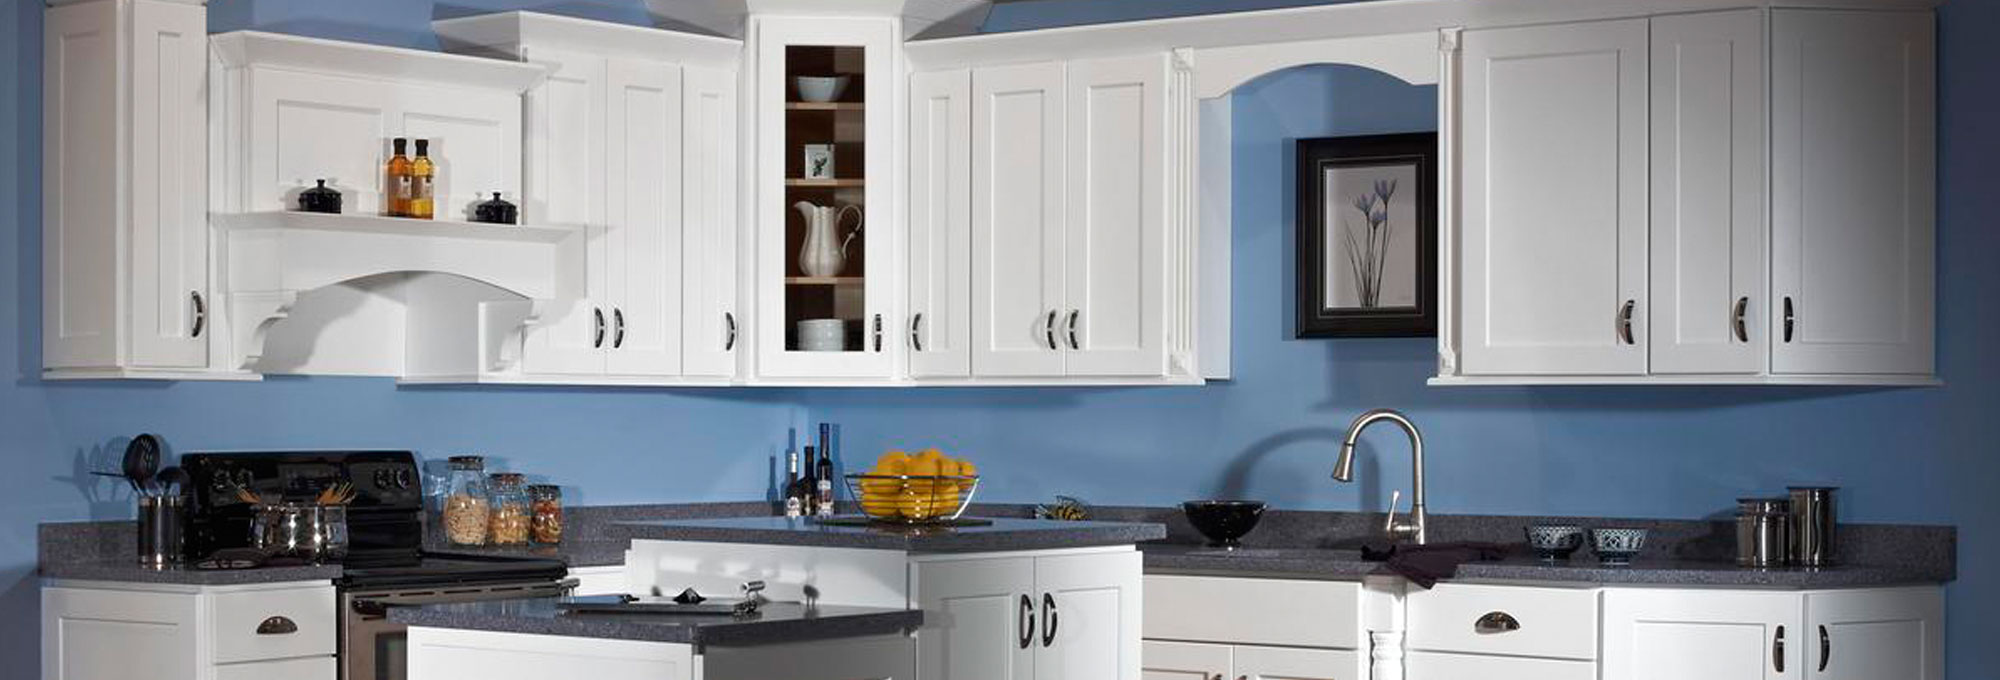 Accent Kitchens Llc Burlington Ct Home